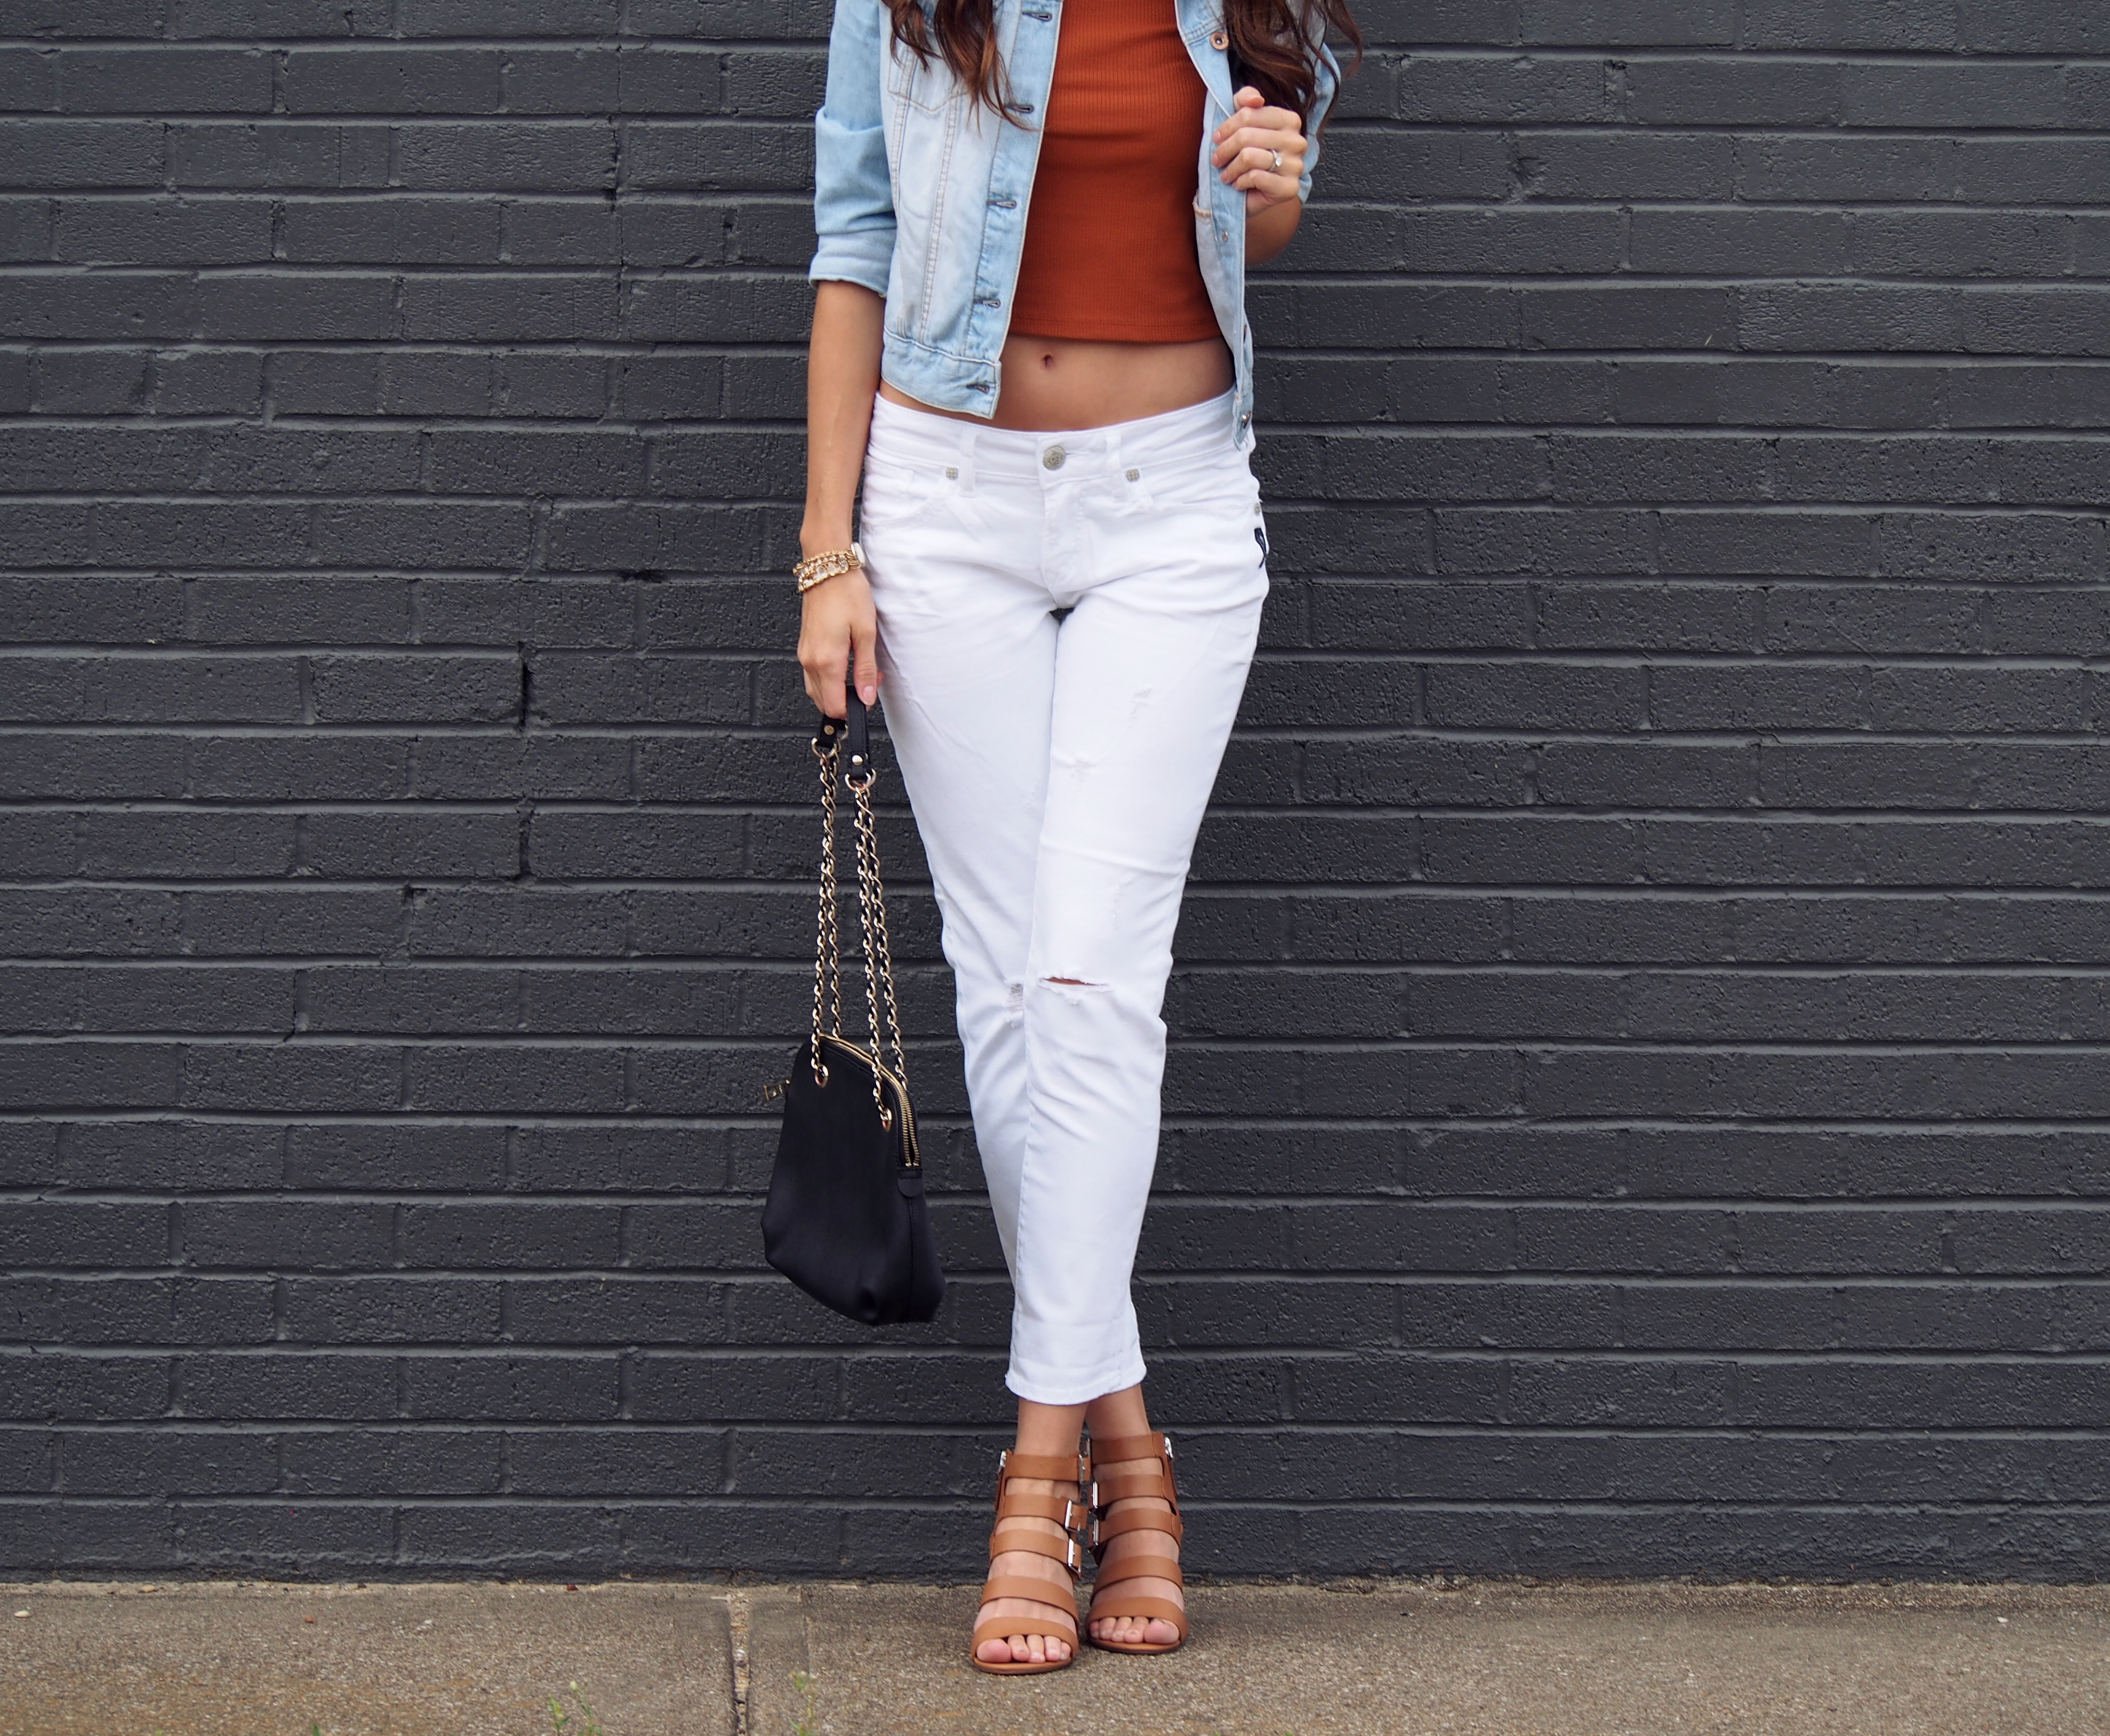 White Boyfriend Jeans » My View in Heels